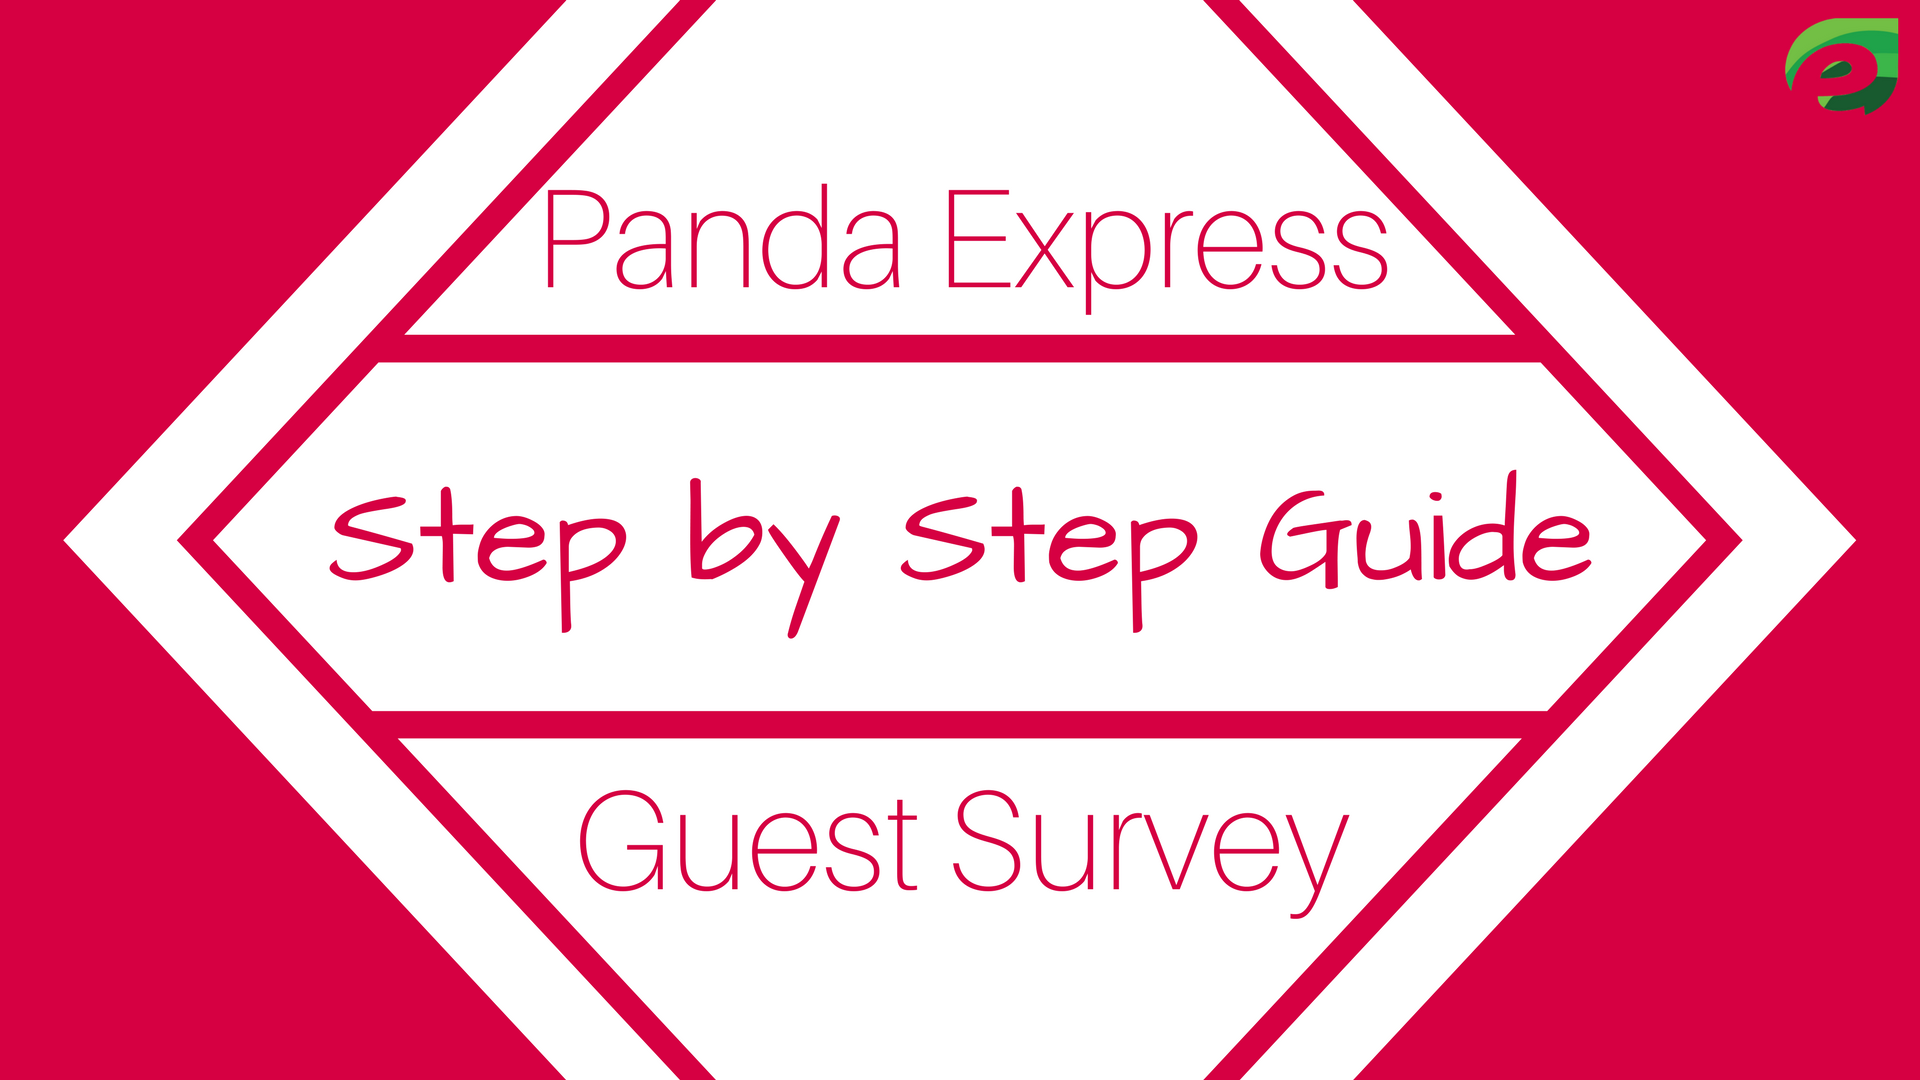 Panda Express Survey Prize. A Panda Express Validation Code; Panda Express Survey Offer Rules. You can not use the offer with other offers at the same time. The offer cannot be substituted for cash. Panda Express Survey Step by Step Guide. Visit the Panda Express survey official site.